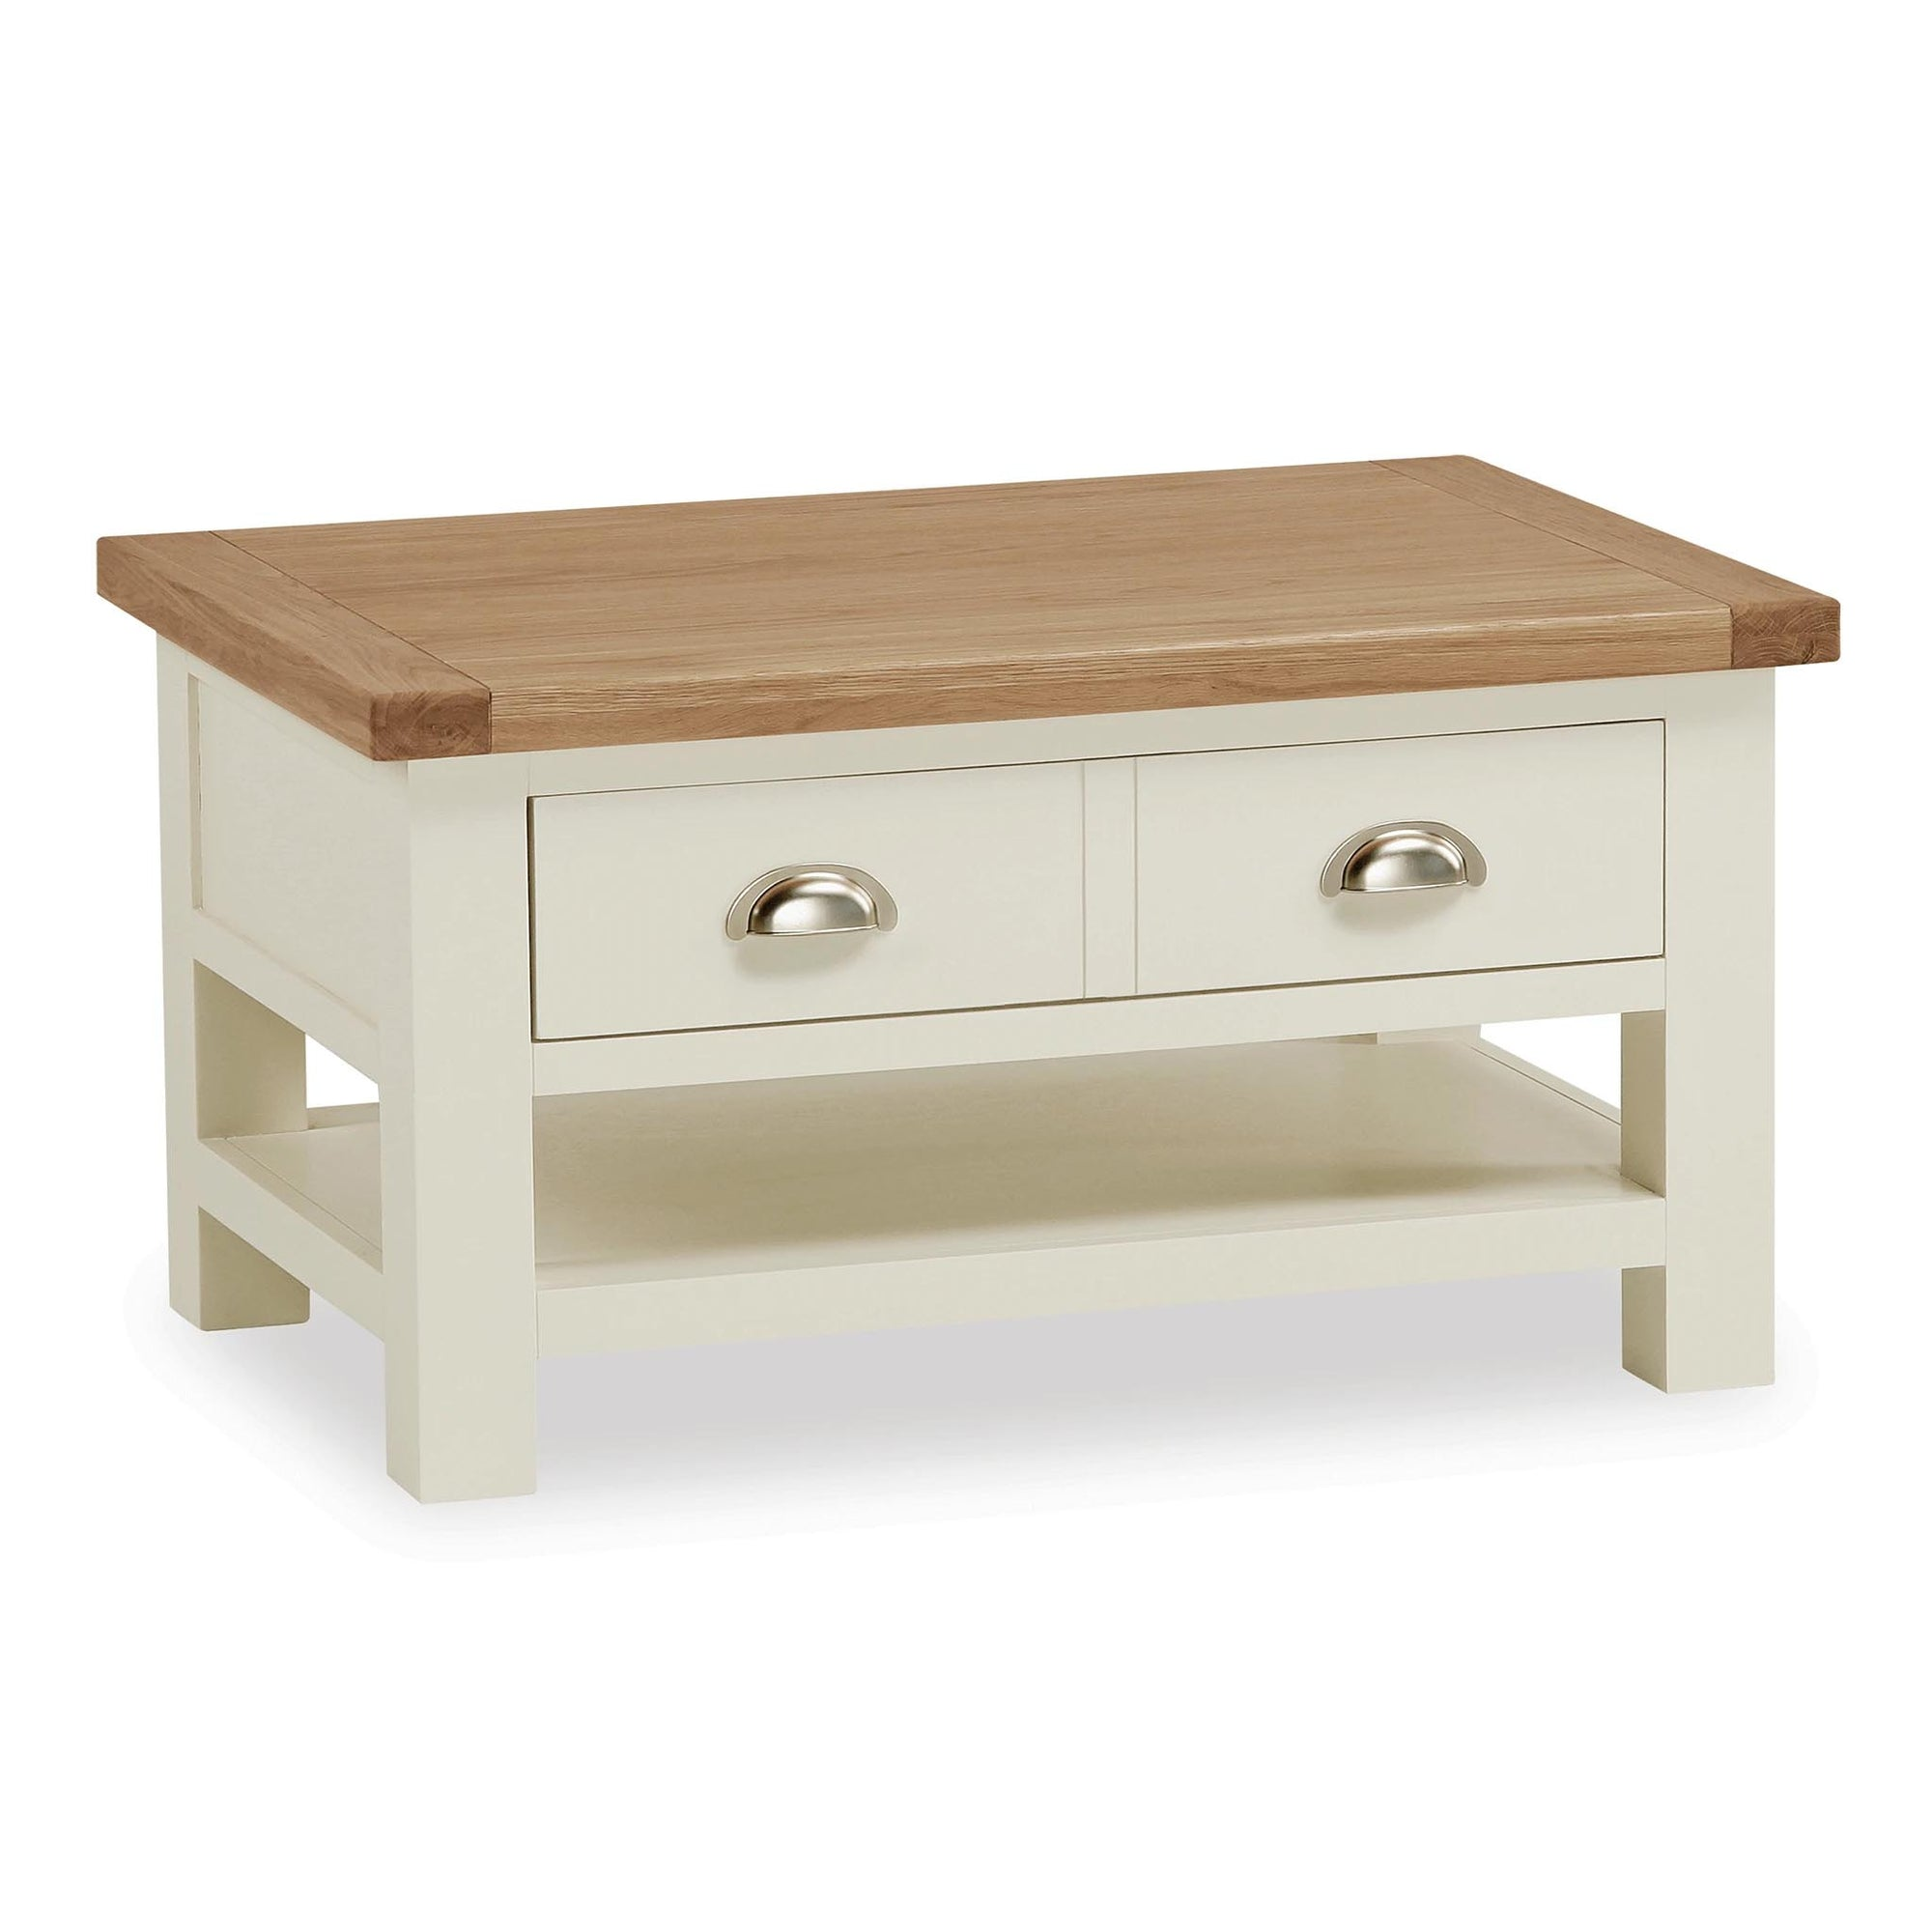 The Daymer Cream Painted Small Coffee Table with Storage Drawer from Roseland Furniture